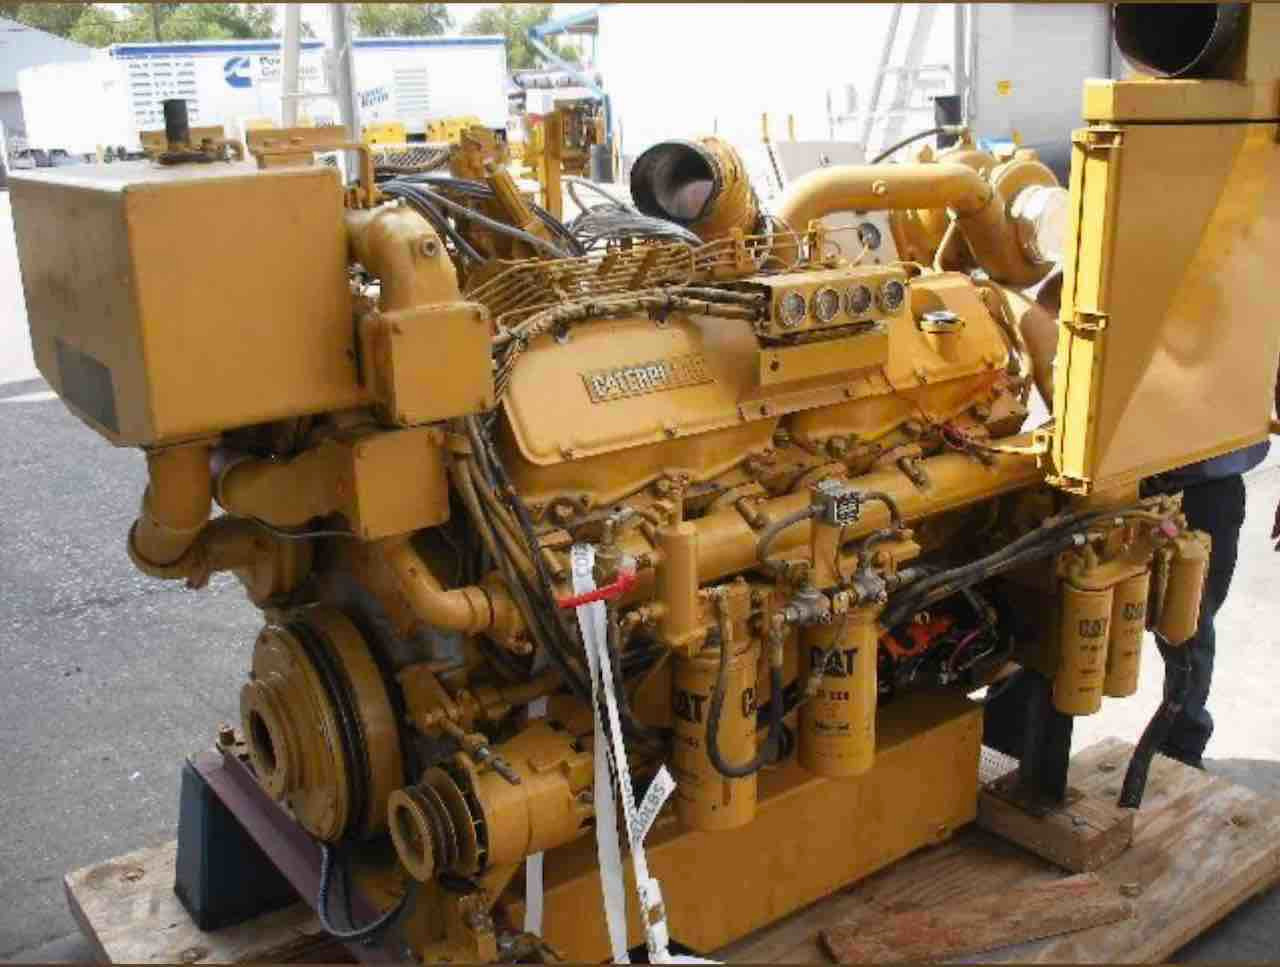 CATERPILLAR 3412, 1800RPM MARINE DIESEL ENGINE REMAN - GZ